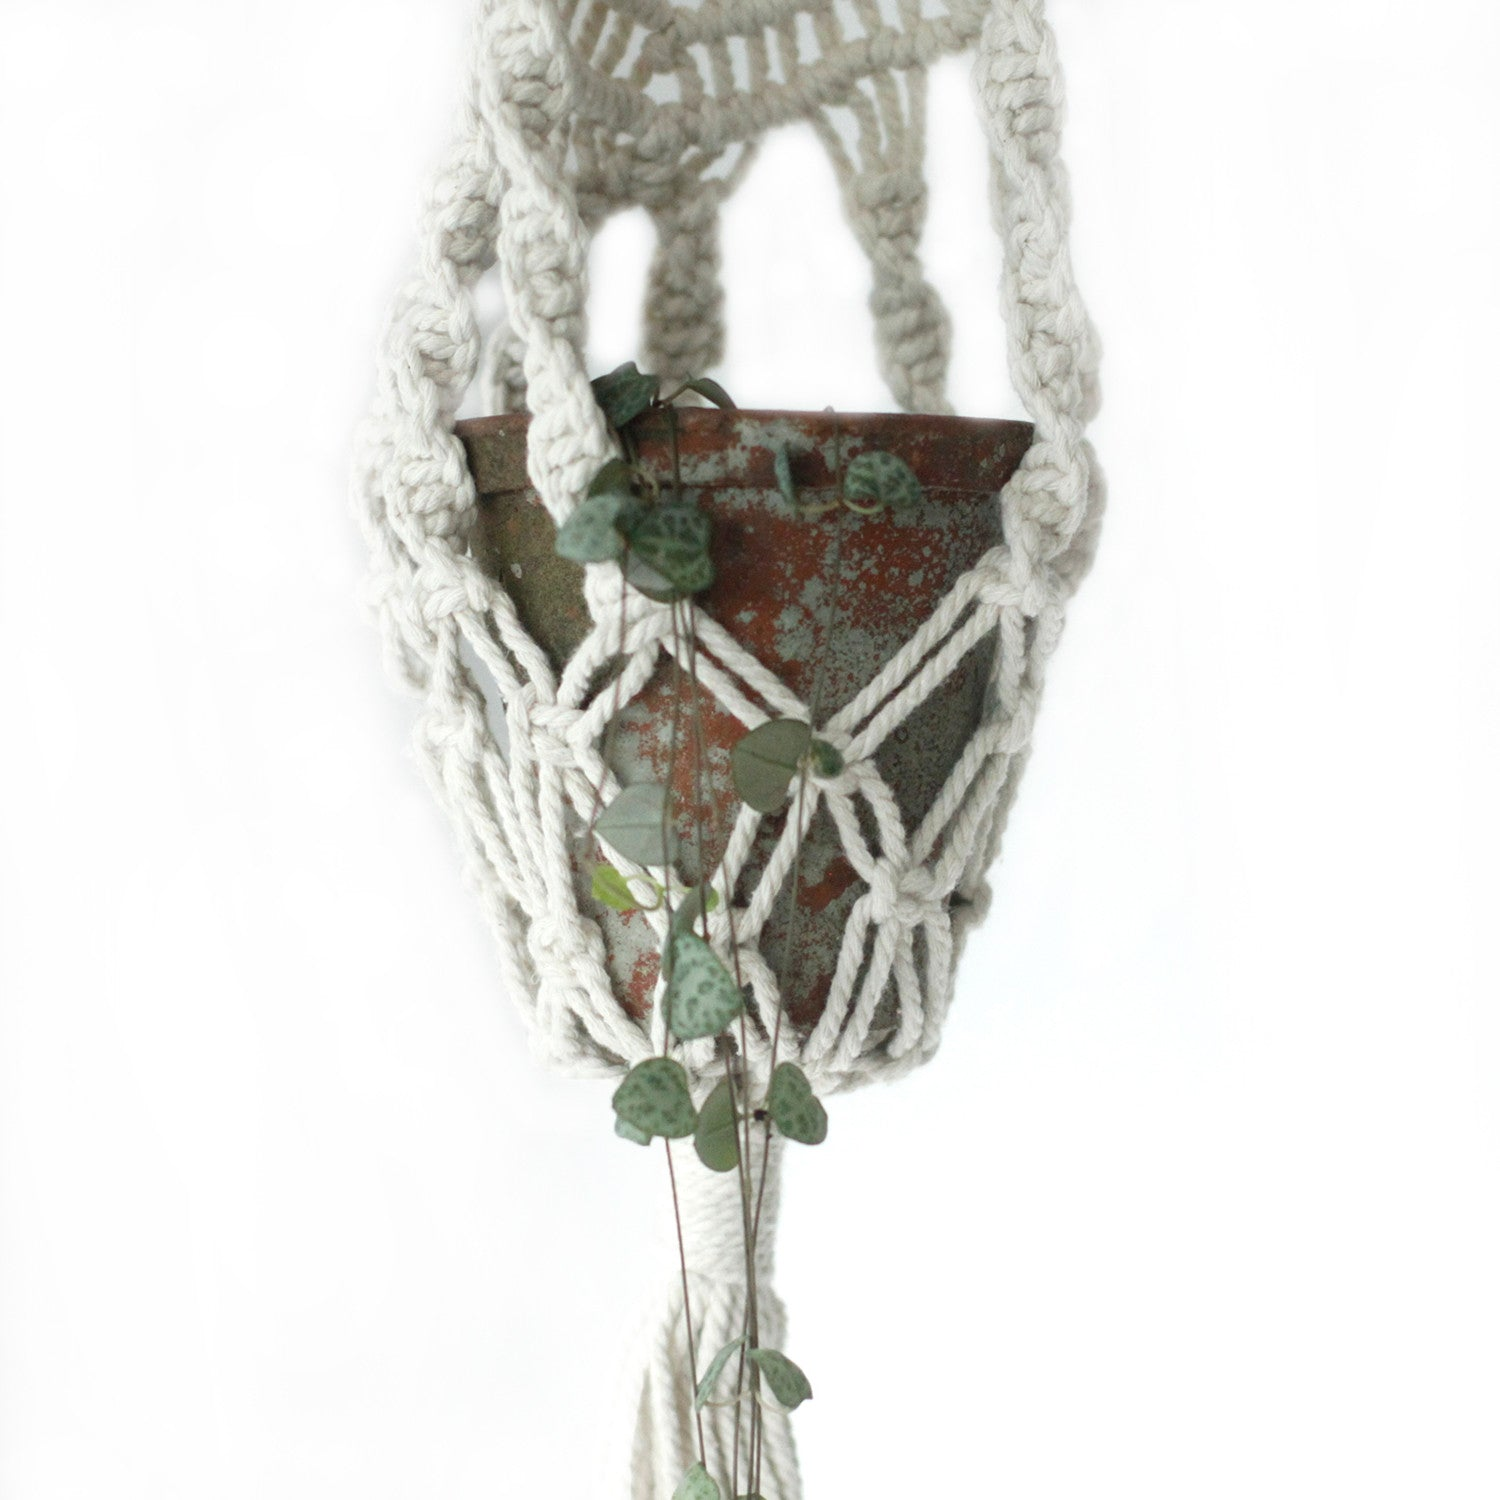 Macrame Pot Holder - Long With Ratten Hoop - Ellie J Shoppe